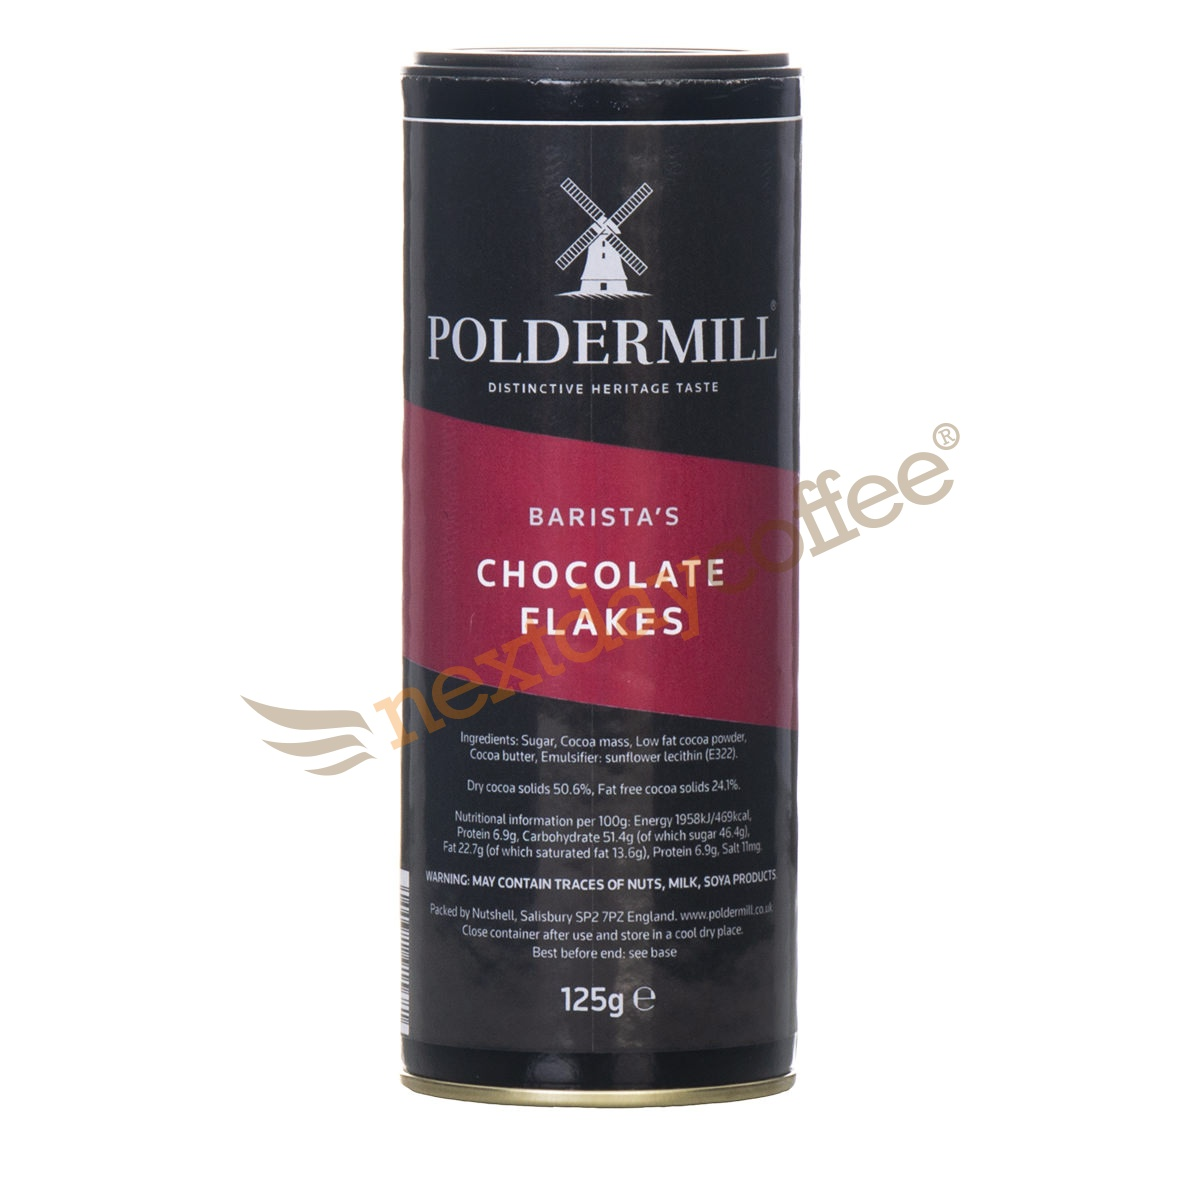 Poldermill Barista Chocolate Flakes (125g)